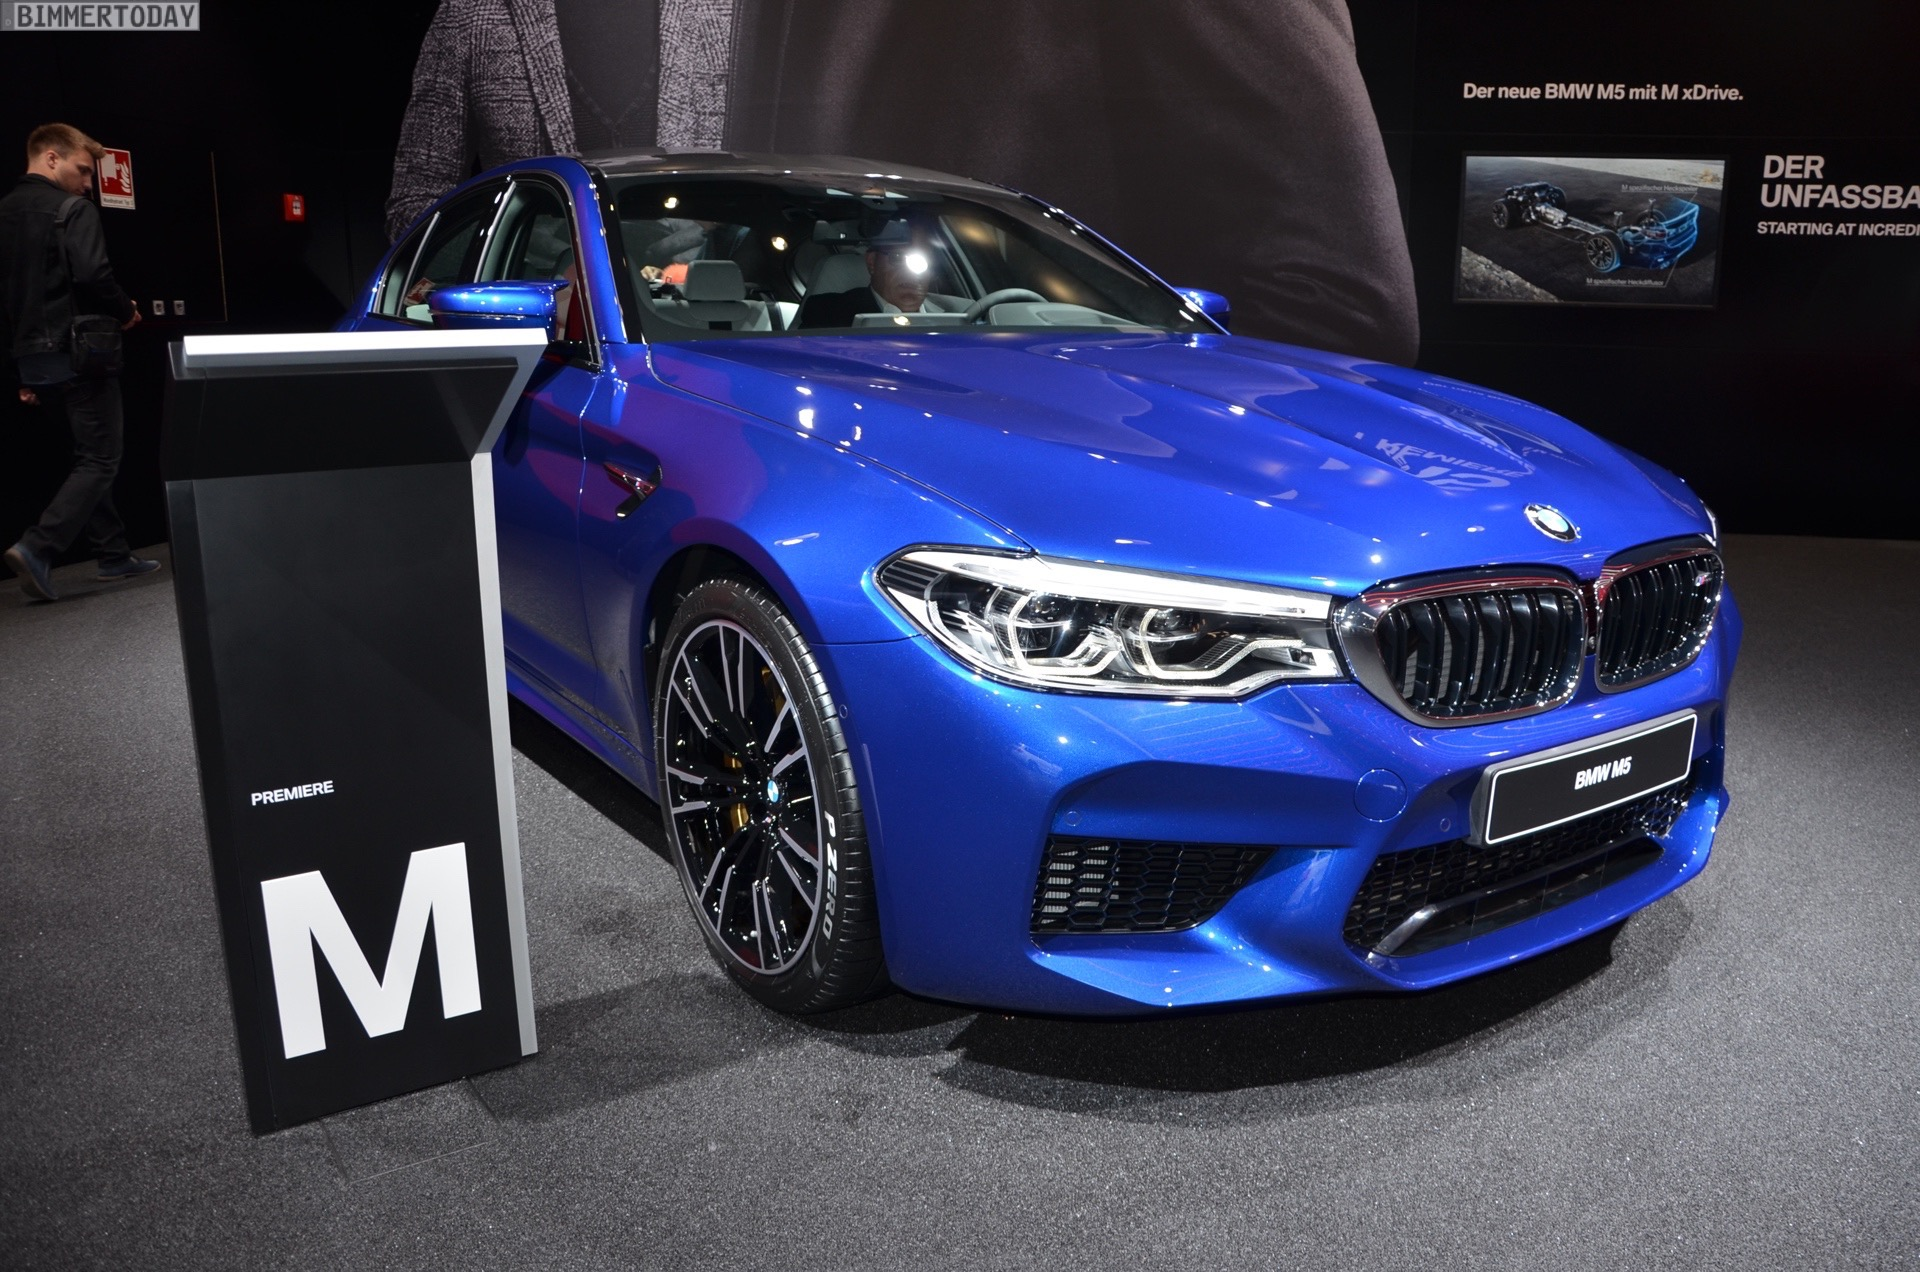 Iaa 2017 Bmw M5 F90 In Marina Bay Blue Live Fotos